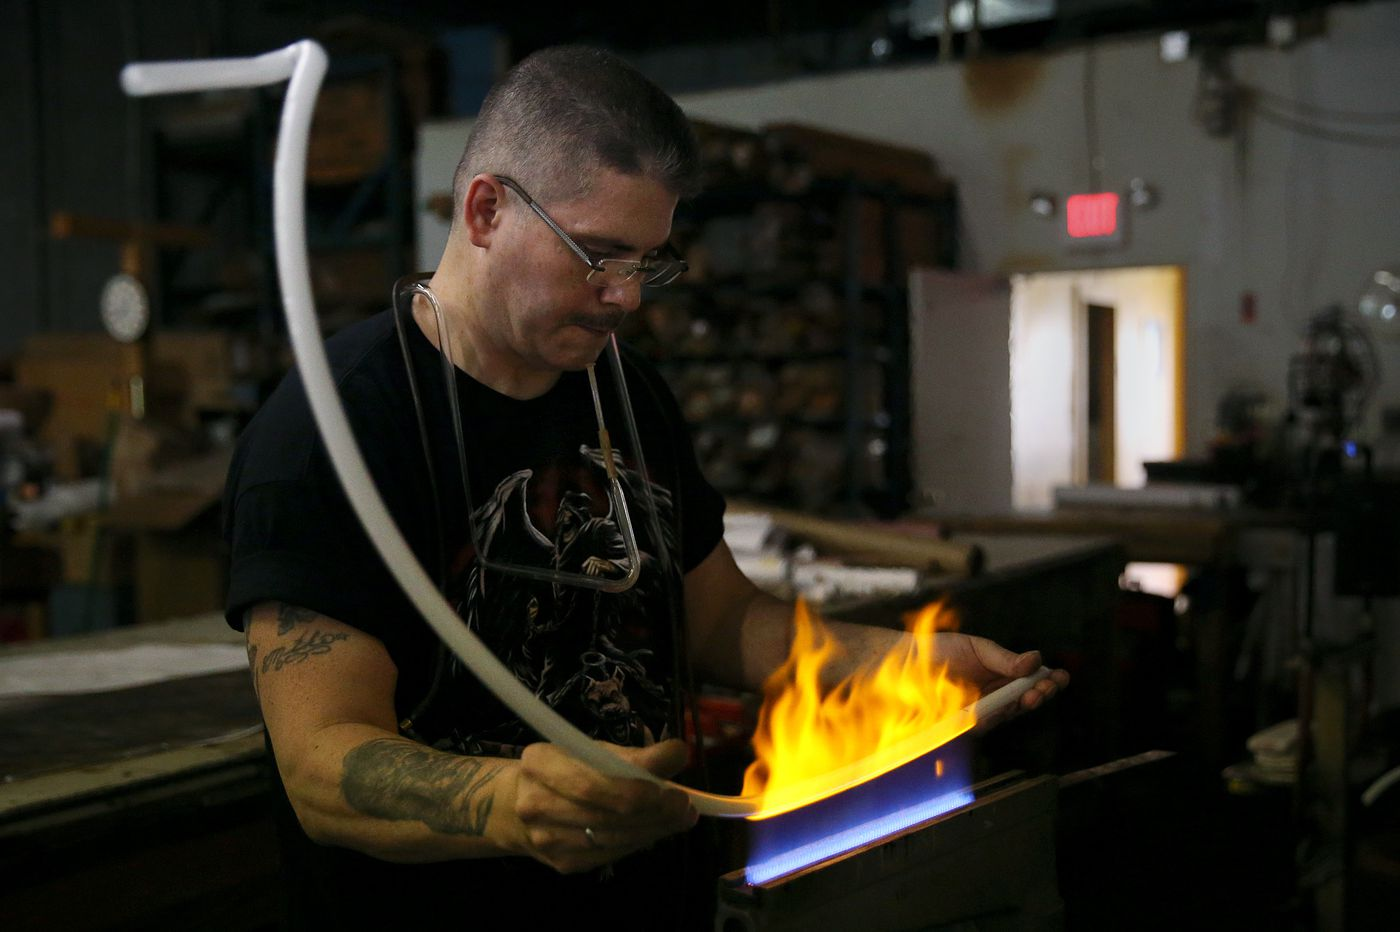 Can neon's comeback among trendy companies save Philly'slast glass benders?